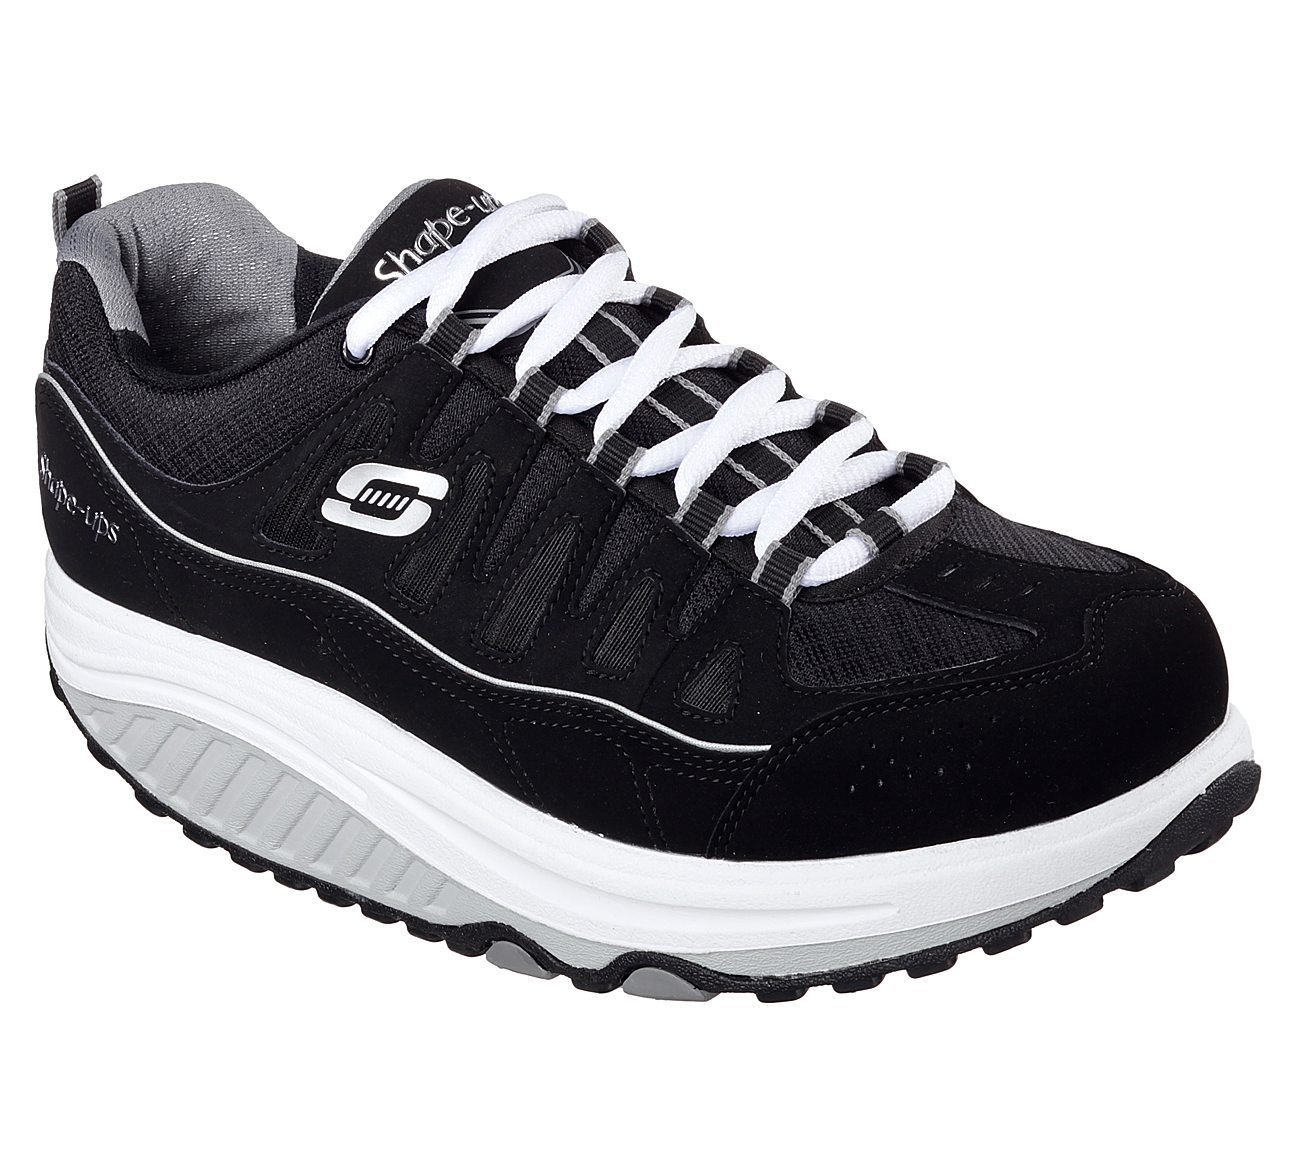 skechers shape ups 2.0